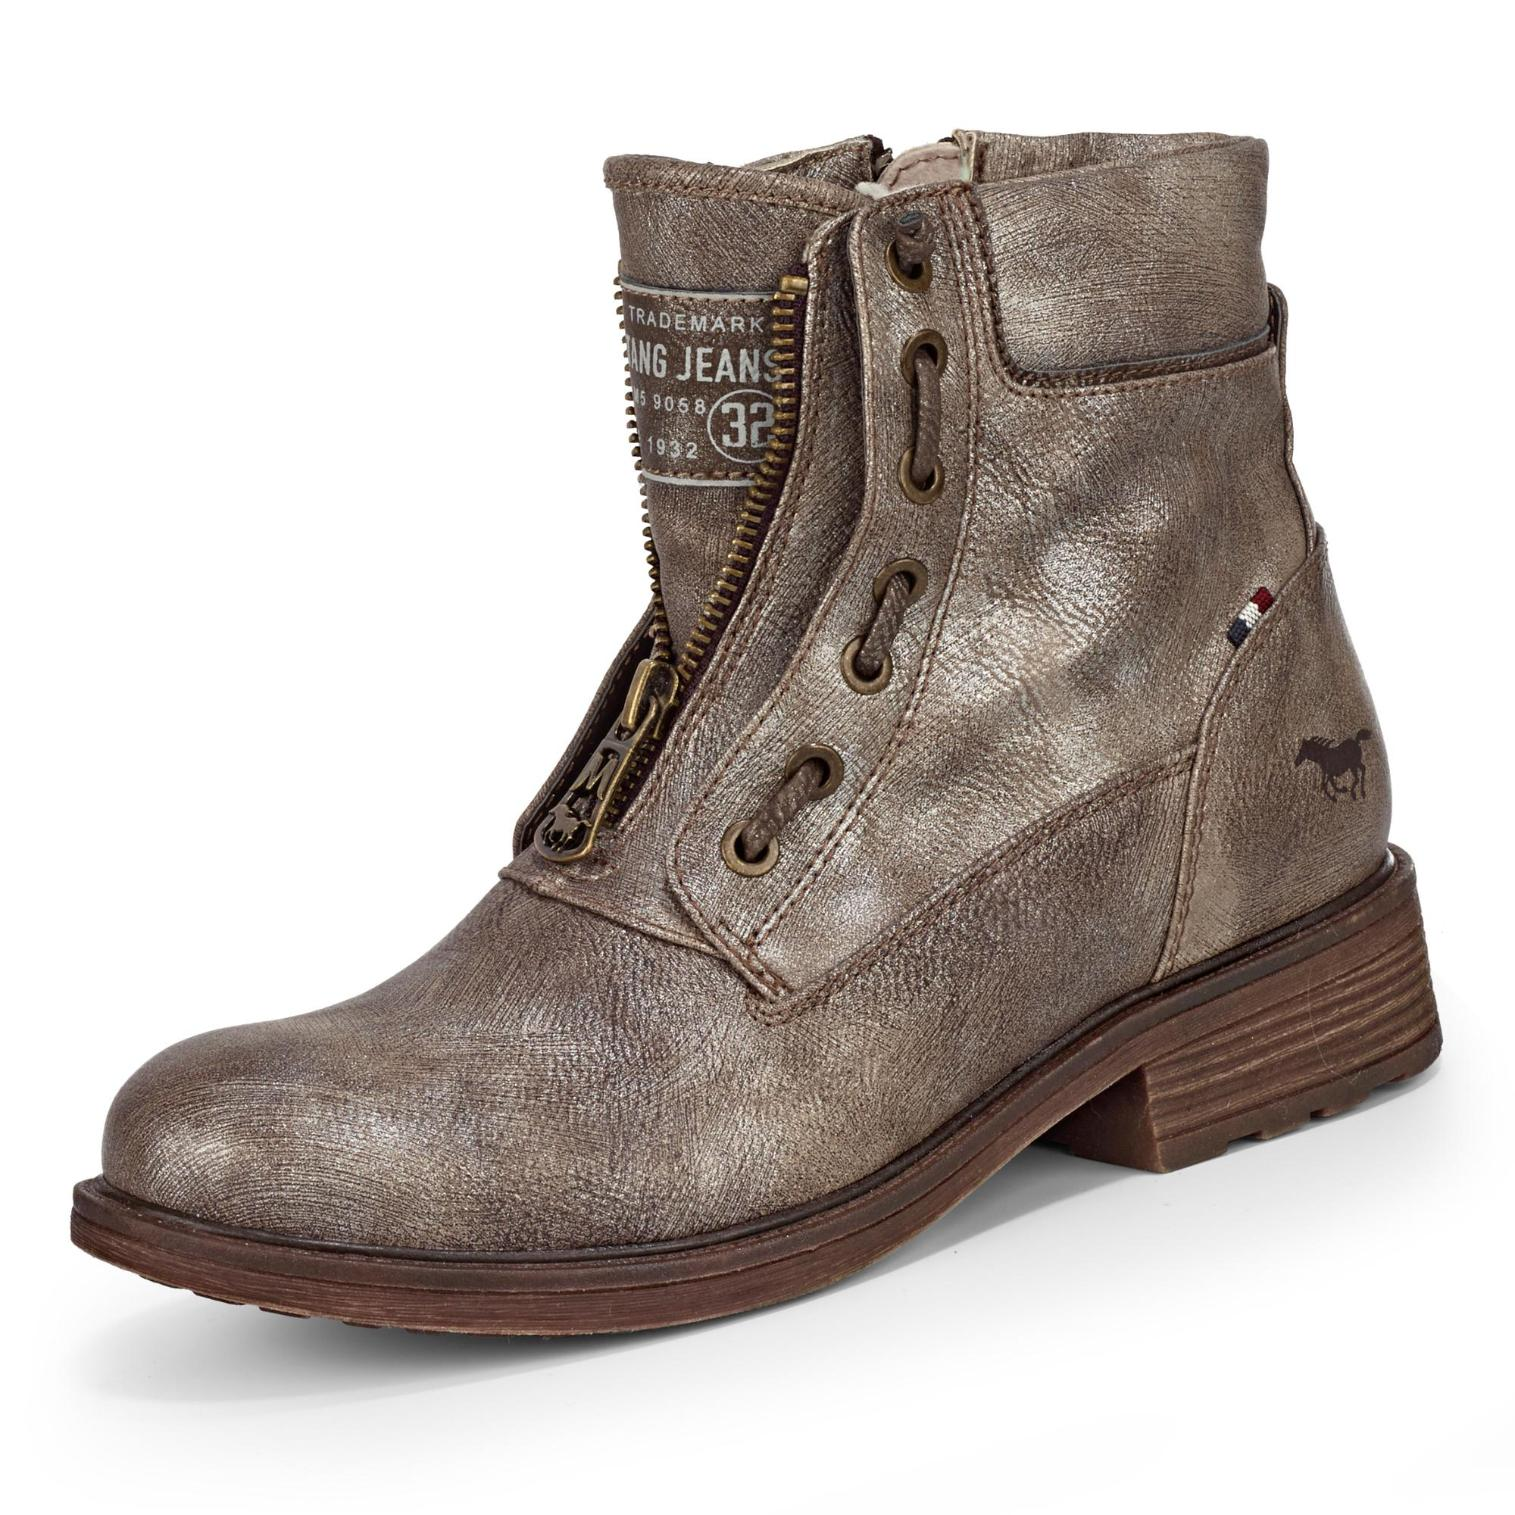 Mustang Boots in Farbe taupe um 39% reduziert online kaufen